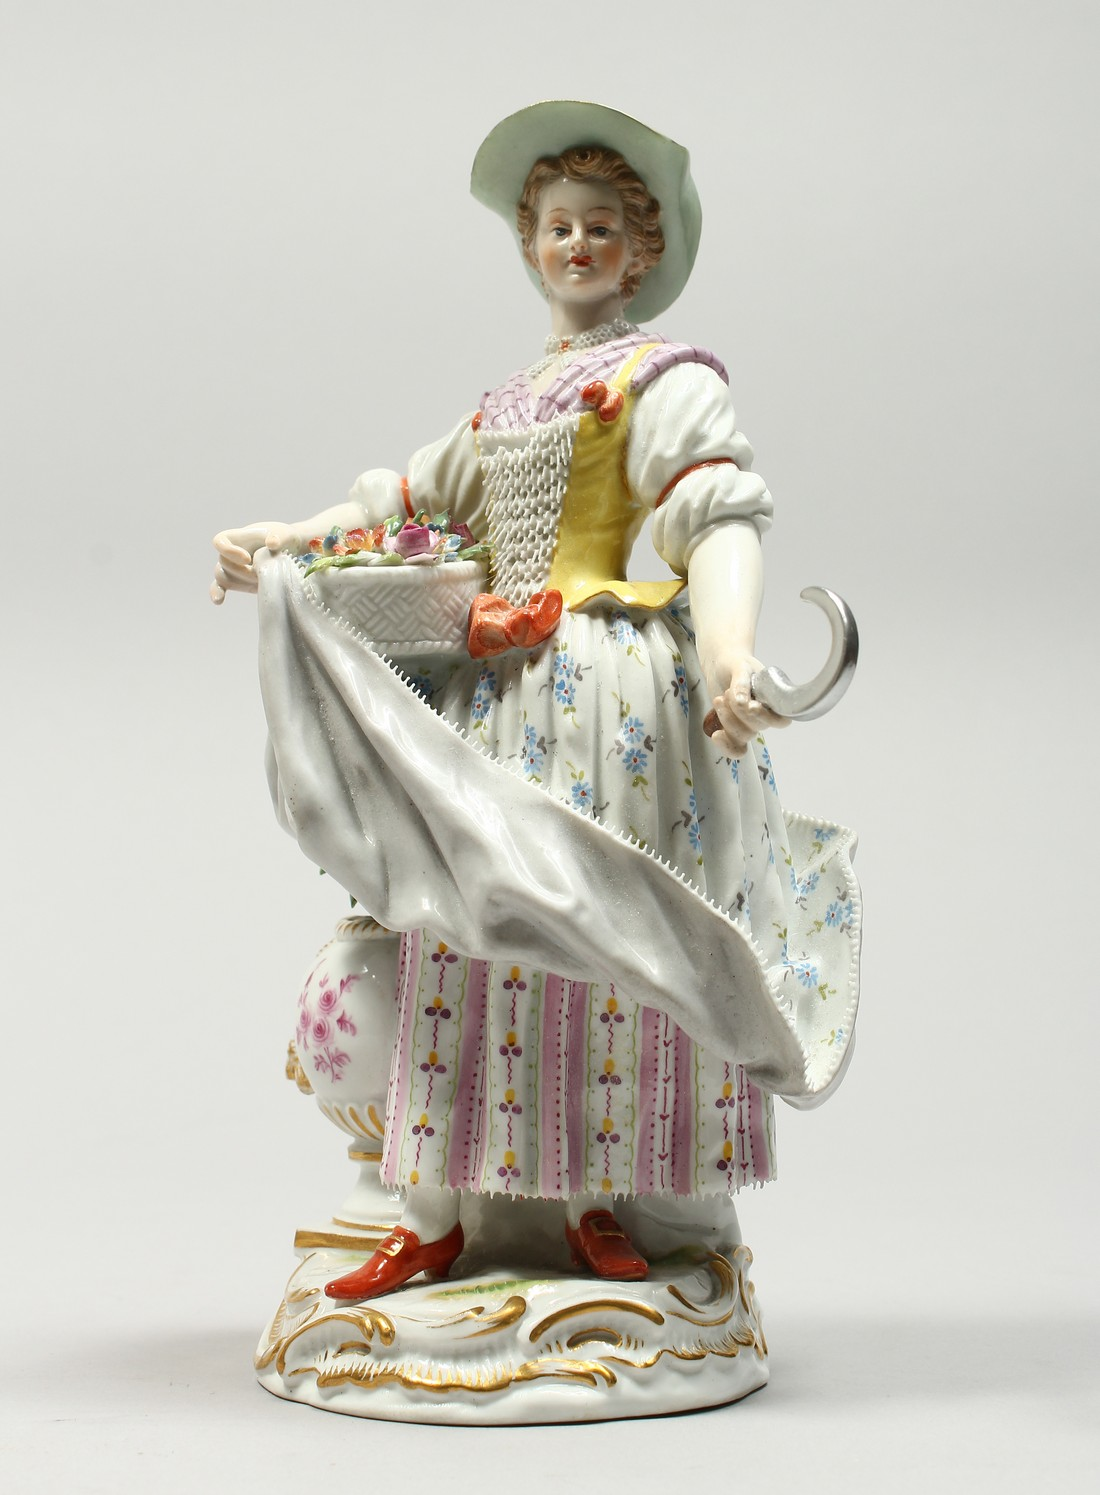 A GOOD MEISSEN PORCELAIN FIGURE OF A GARDENERESE, holding a sickle, carrying a basket of flowers, an